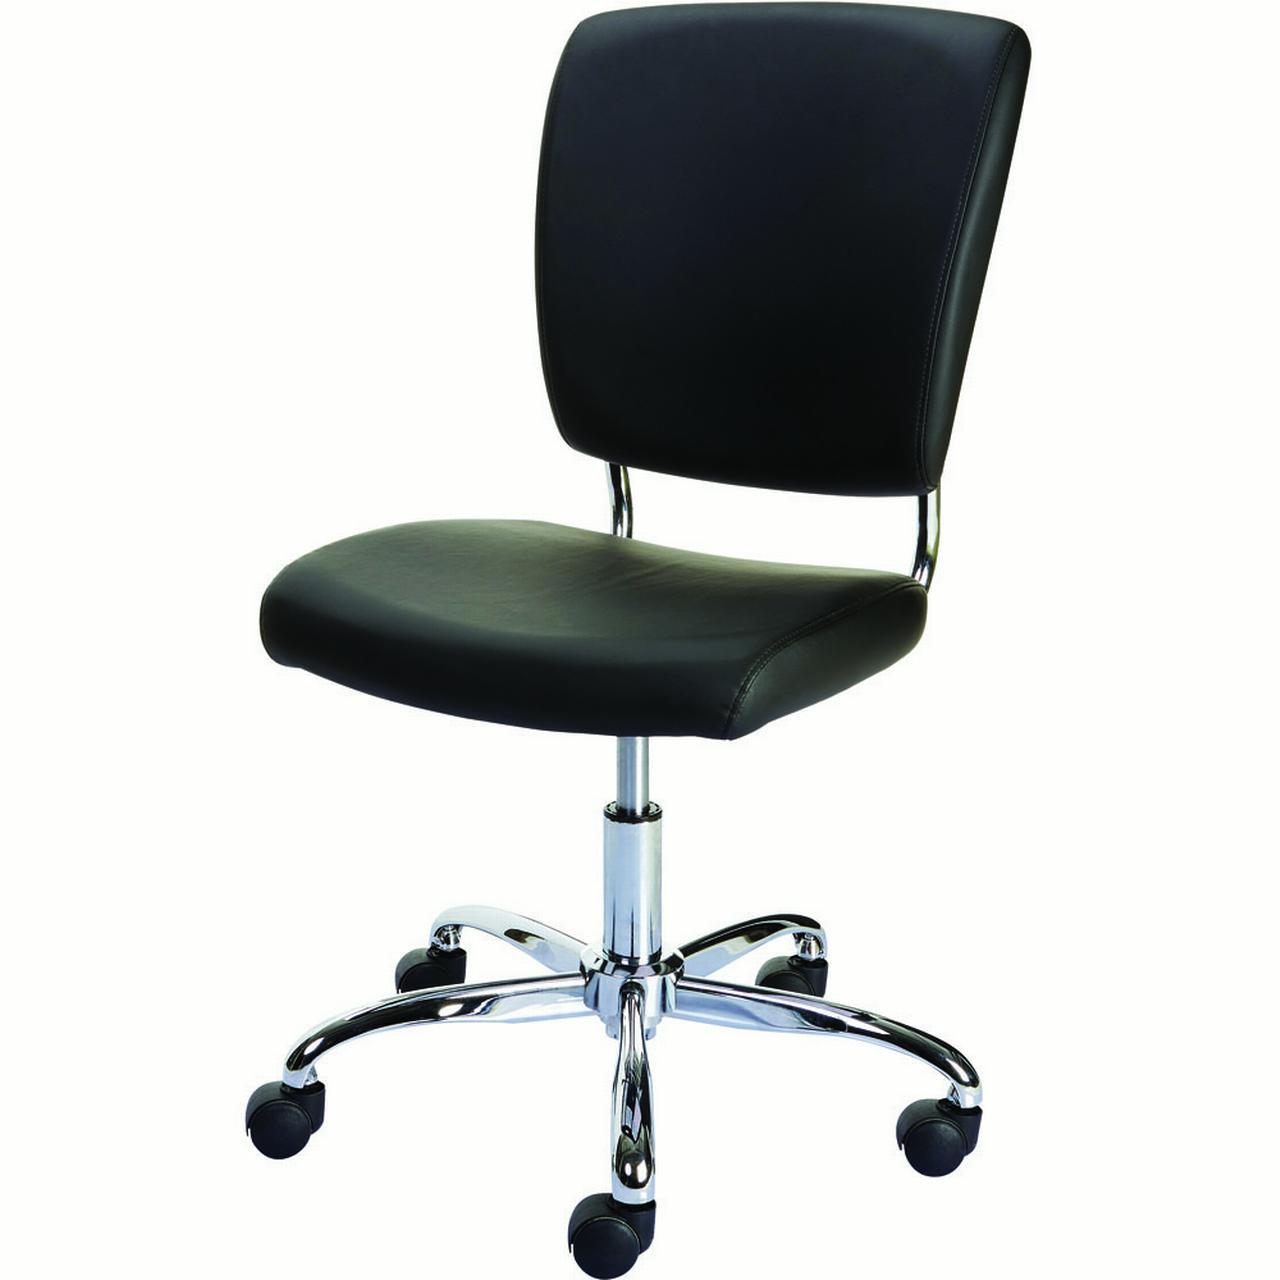 Office Chairs At Staples Staples 27373 Nadler Luxura Office Chair Armless Black Walmart